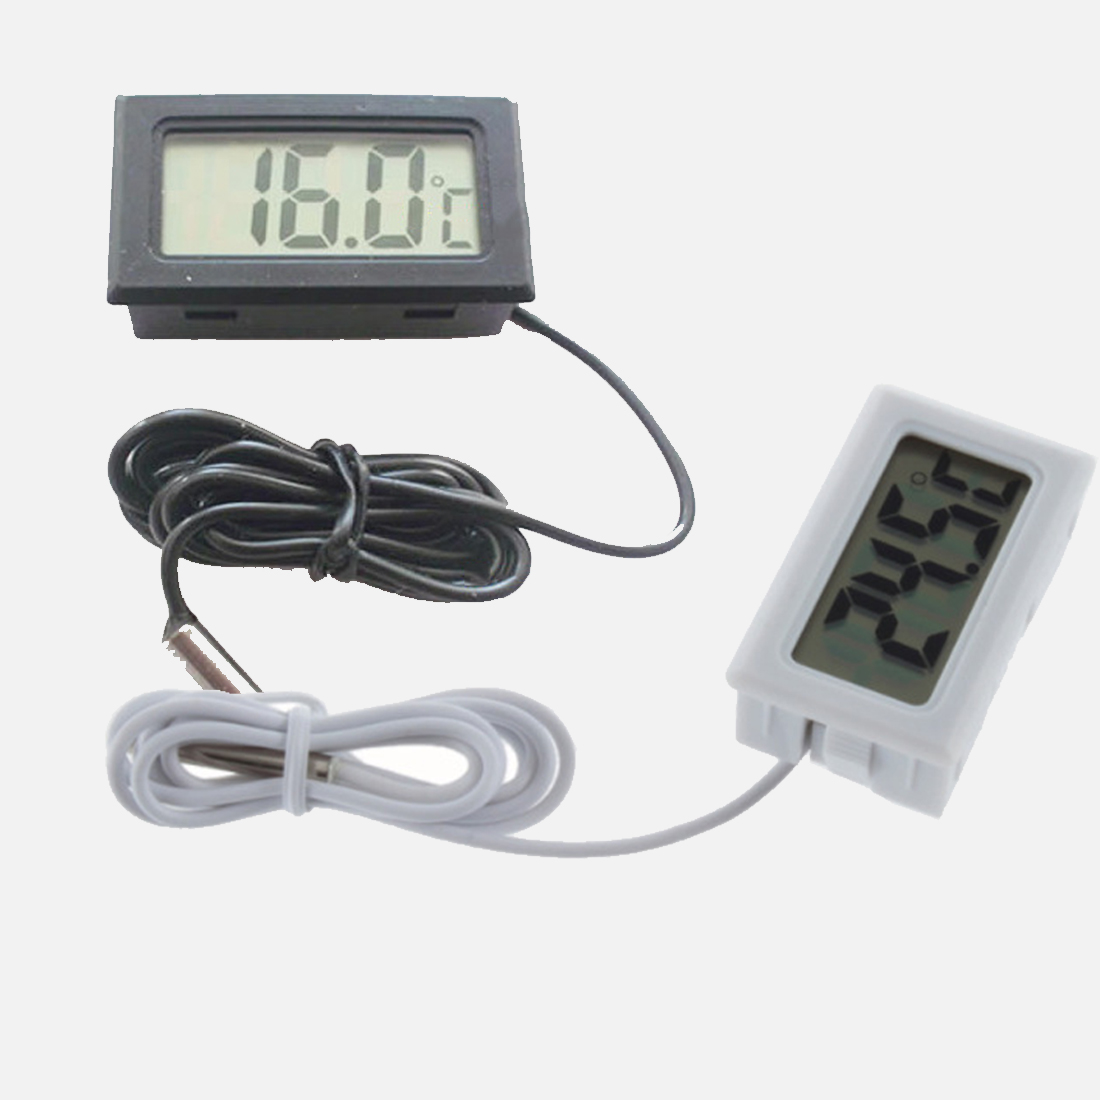 Mini 1M Probe Digital LCD Thermometer for Fridges Freezers <font><b>Coolers</b></font> Chillers Black High Quality image